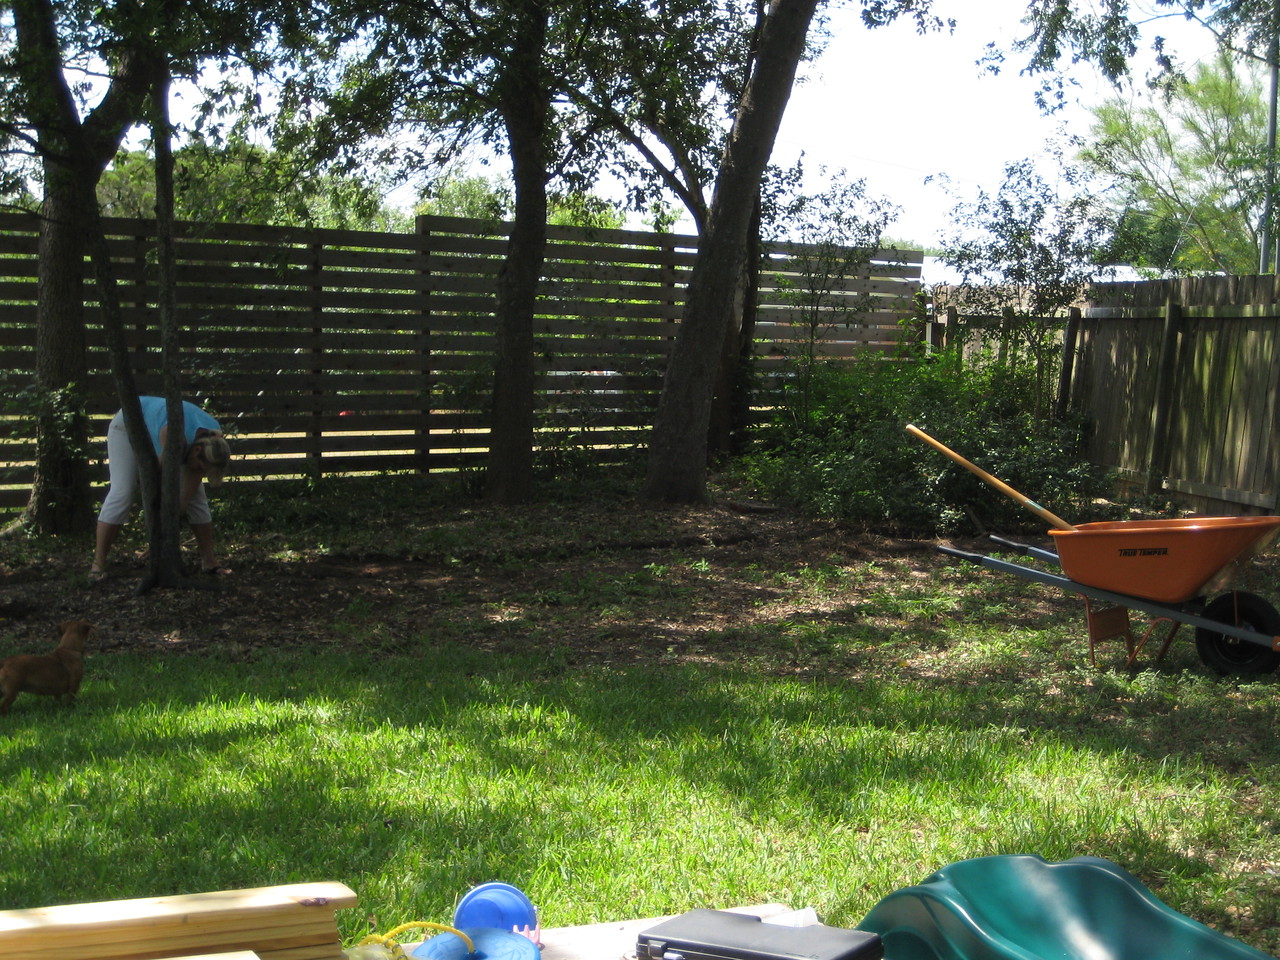 Clearing out for the playset